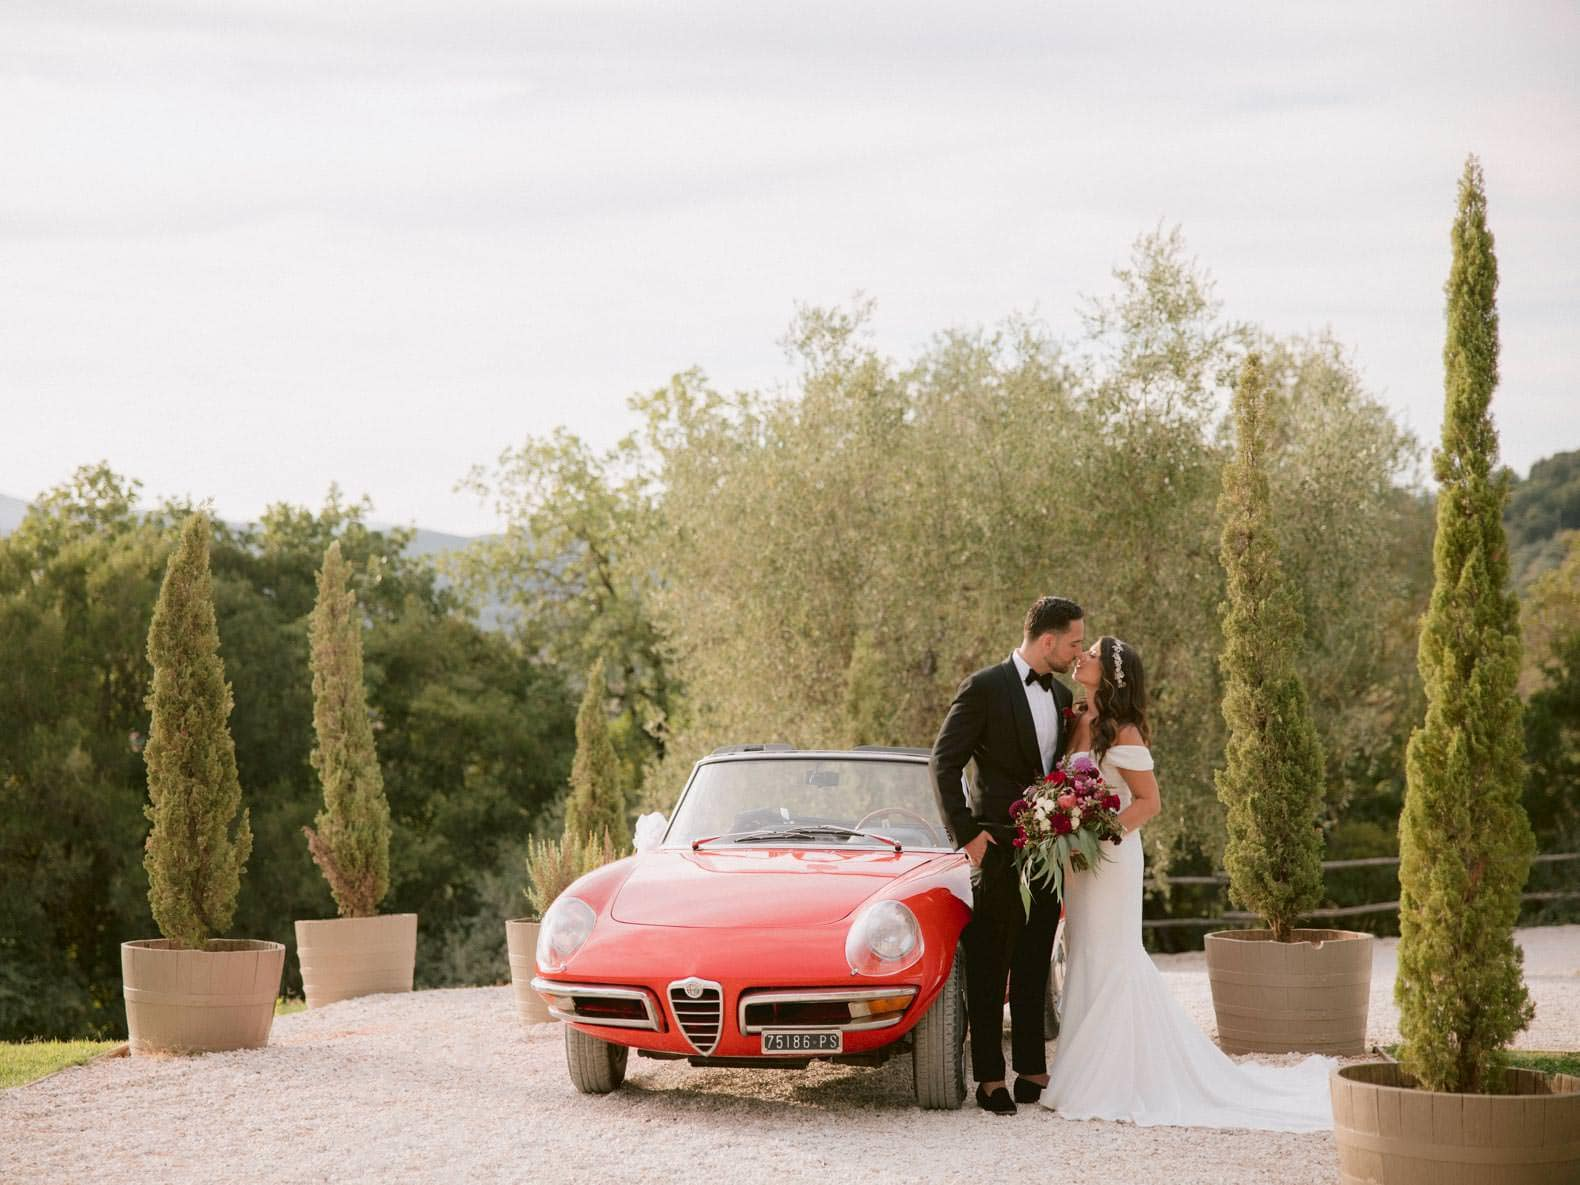 bride and groom kiss each other next to the vintage car